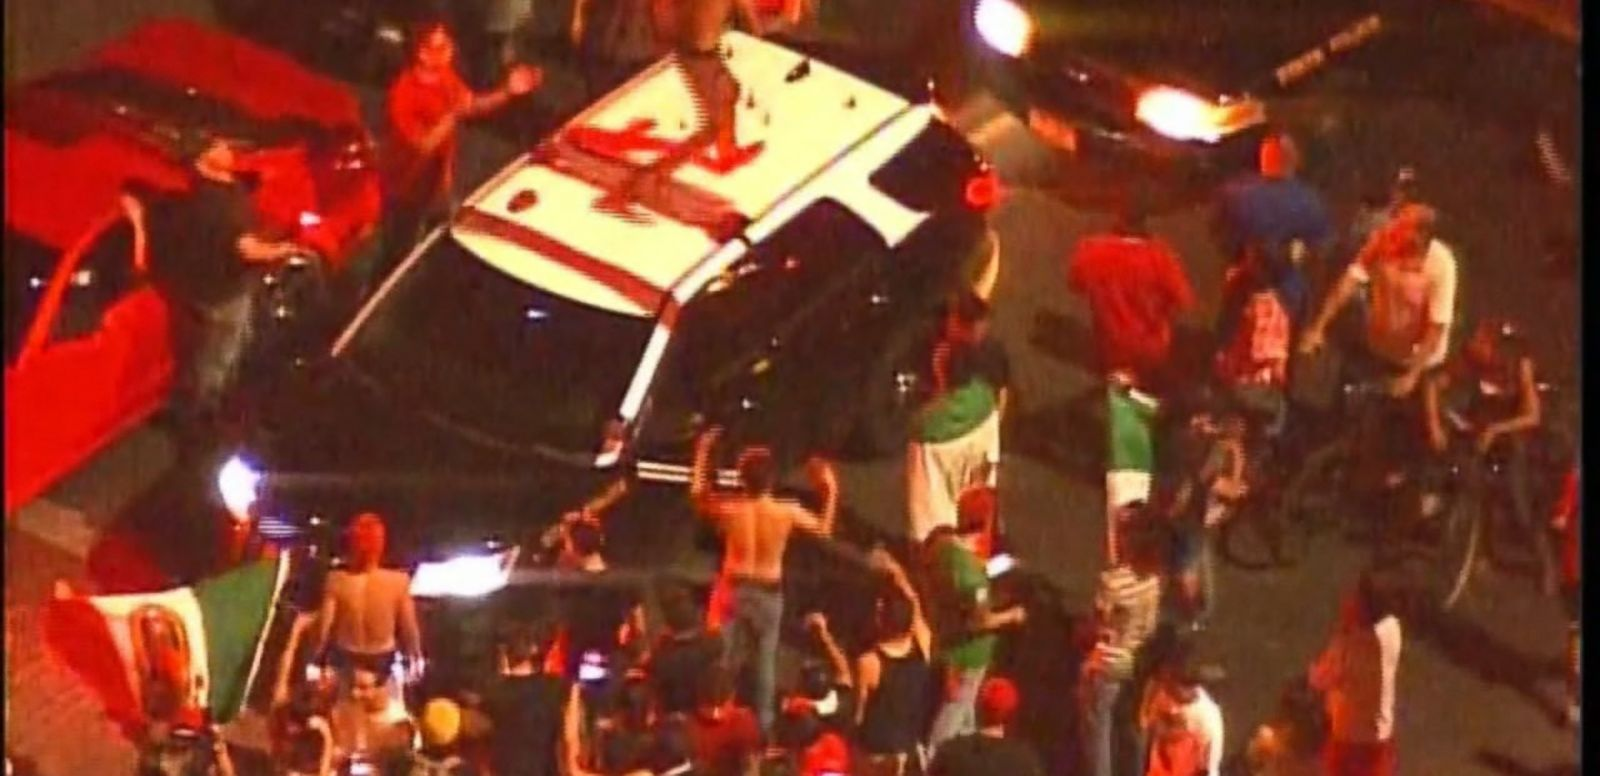 VIDEO: A protester was arrested after a chaotic scene erupted outside a Donald Trump rally in New Mexico overnight, which left several officers injured after being pelted by rocks.